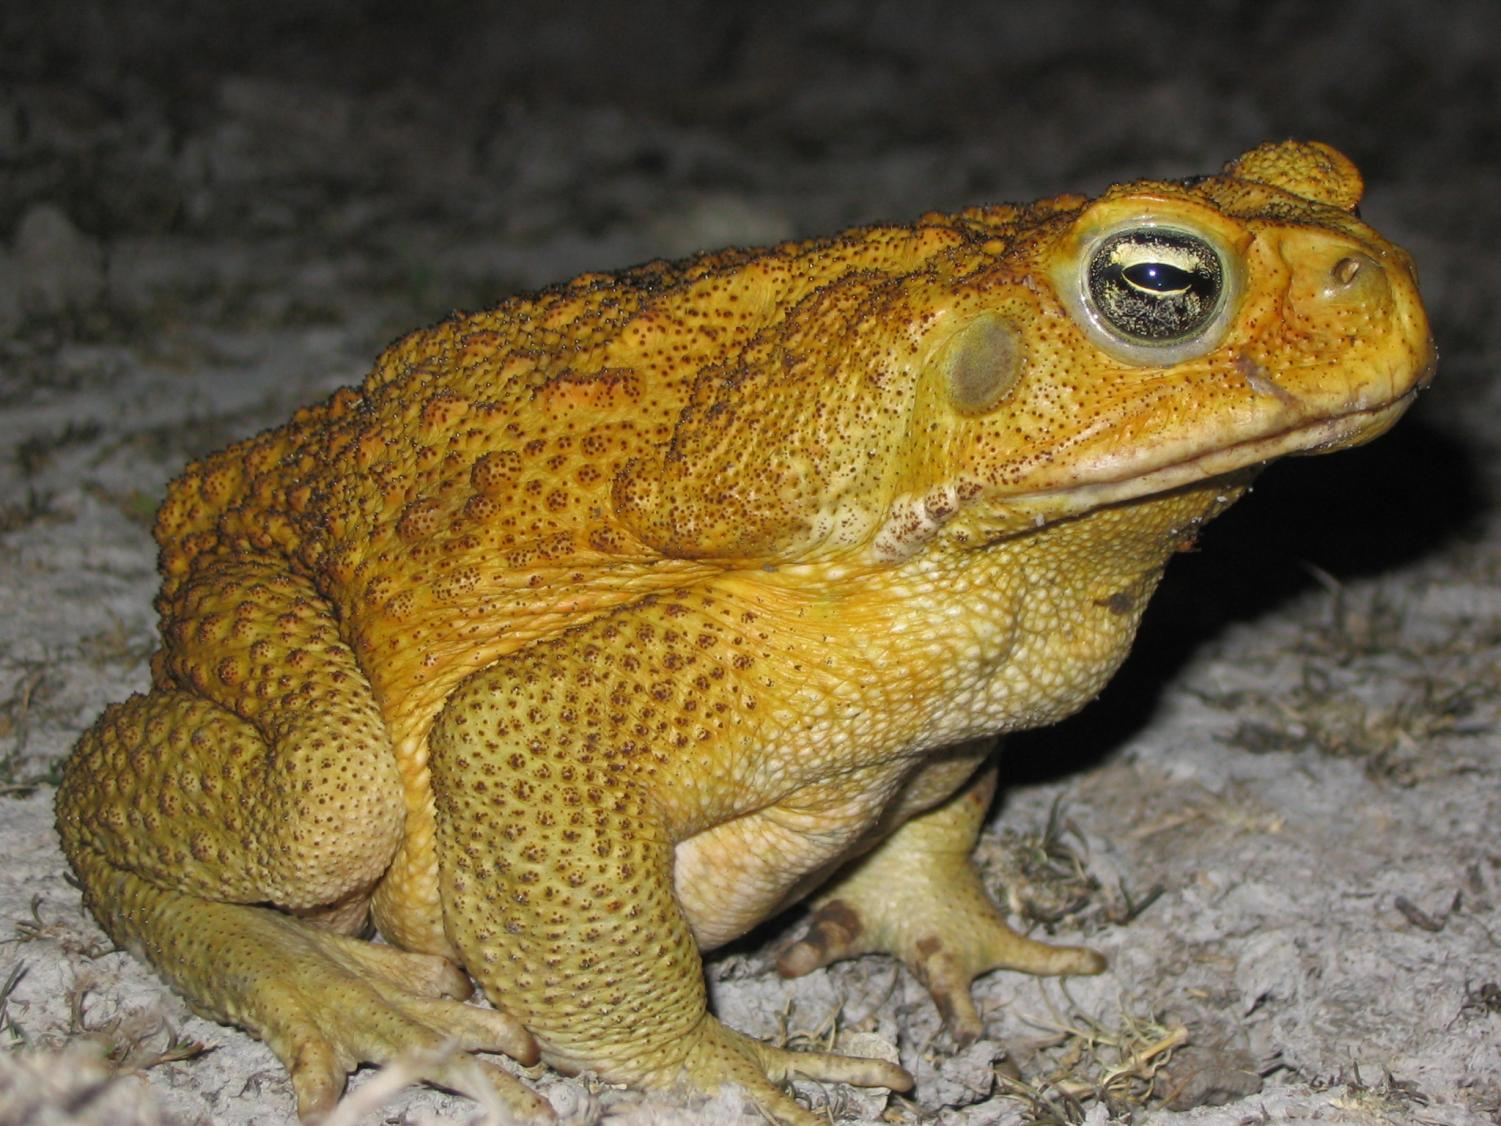 Climate change is making NSW the perfect breeding ground for the stocky, warty cane toad.